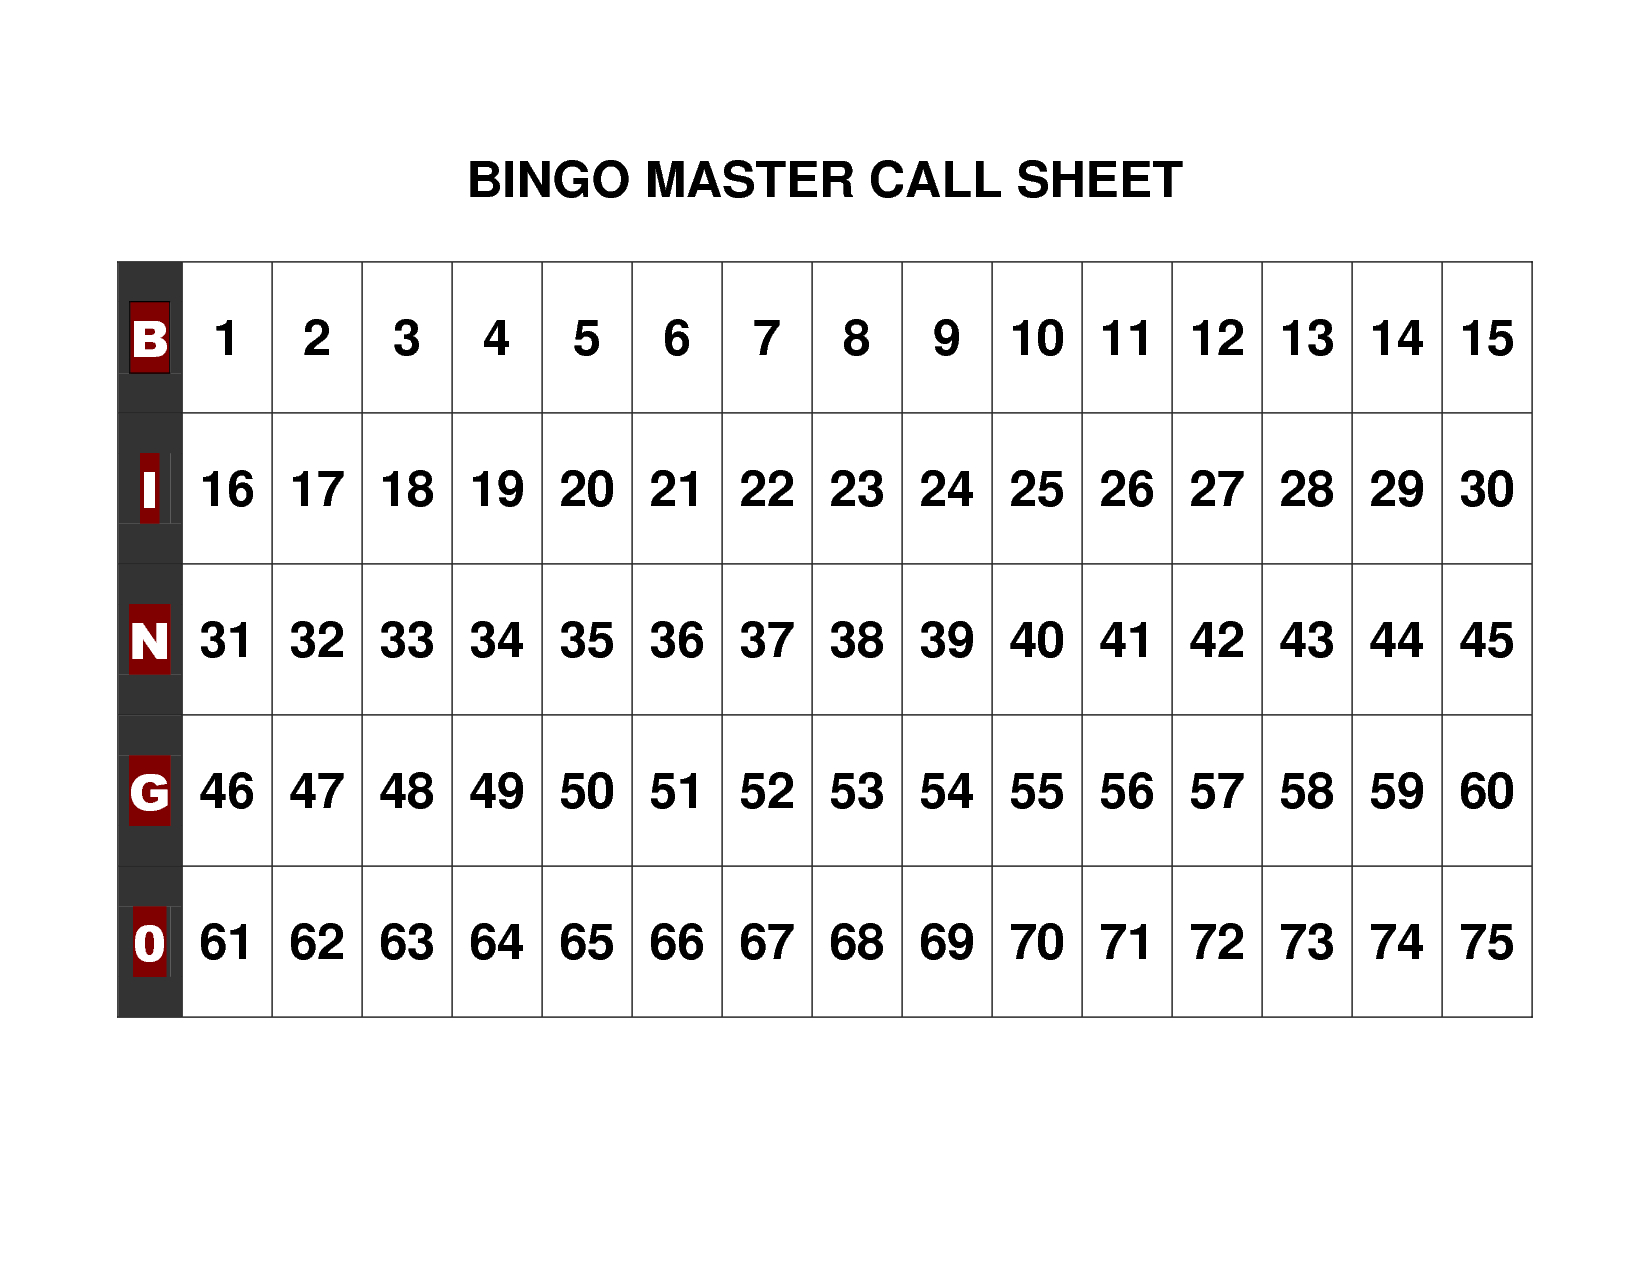 Free+Printable+Bingo+Call+Sheet | Bingo | Pinterest | Bingo, Bingo - Free Printable Bingo Cards And Call Sheet